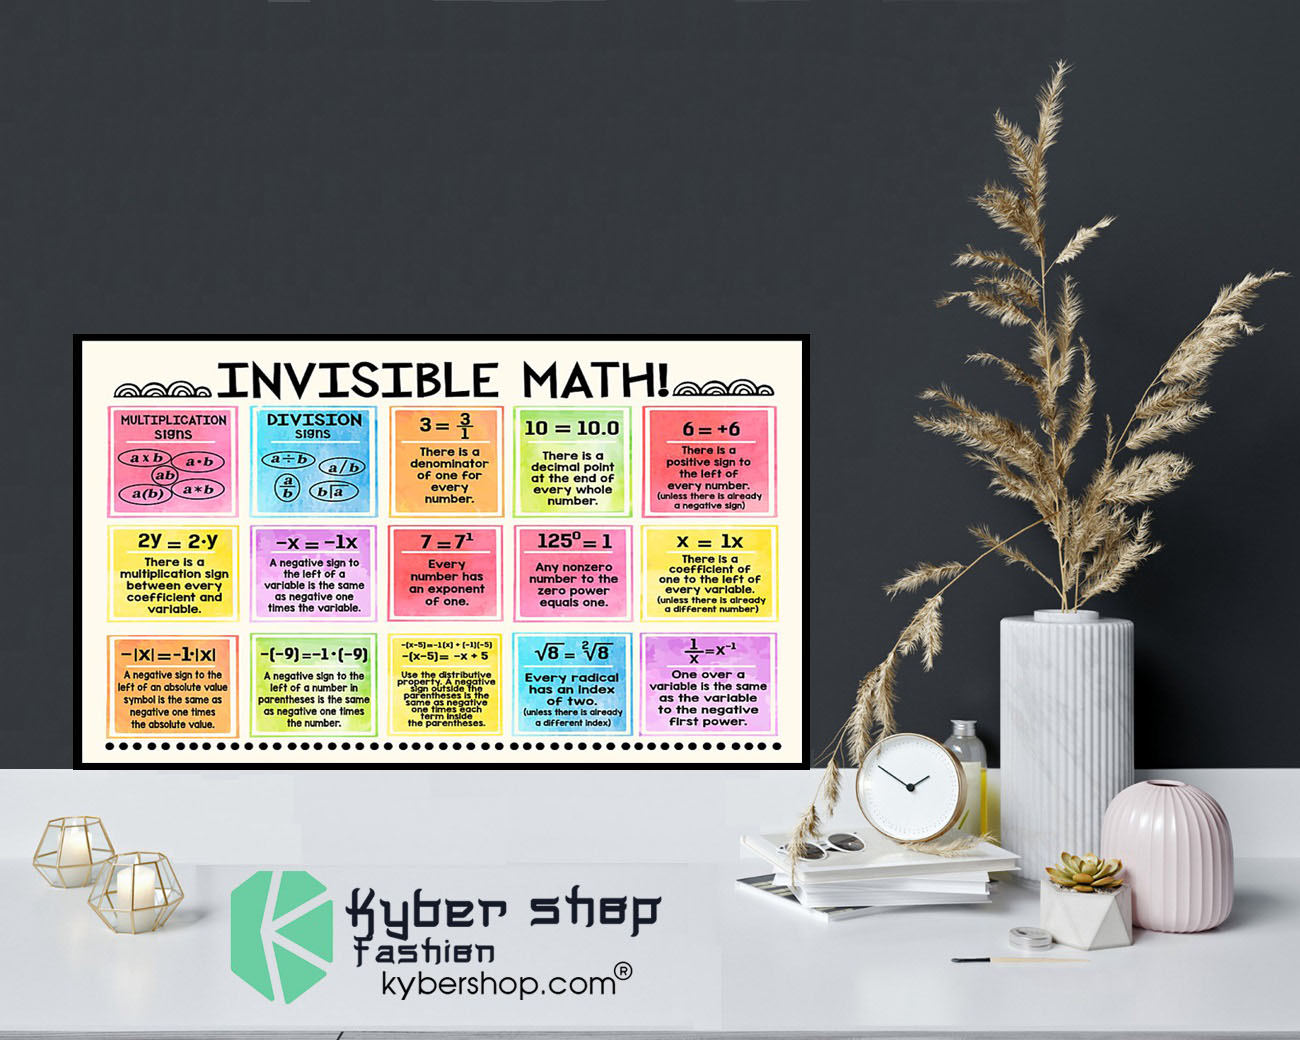 Invisible math poster